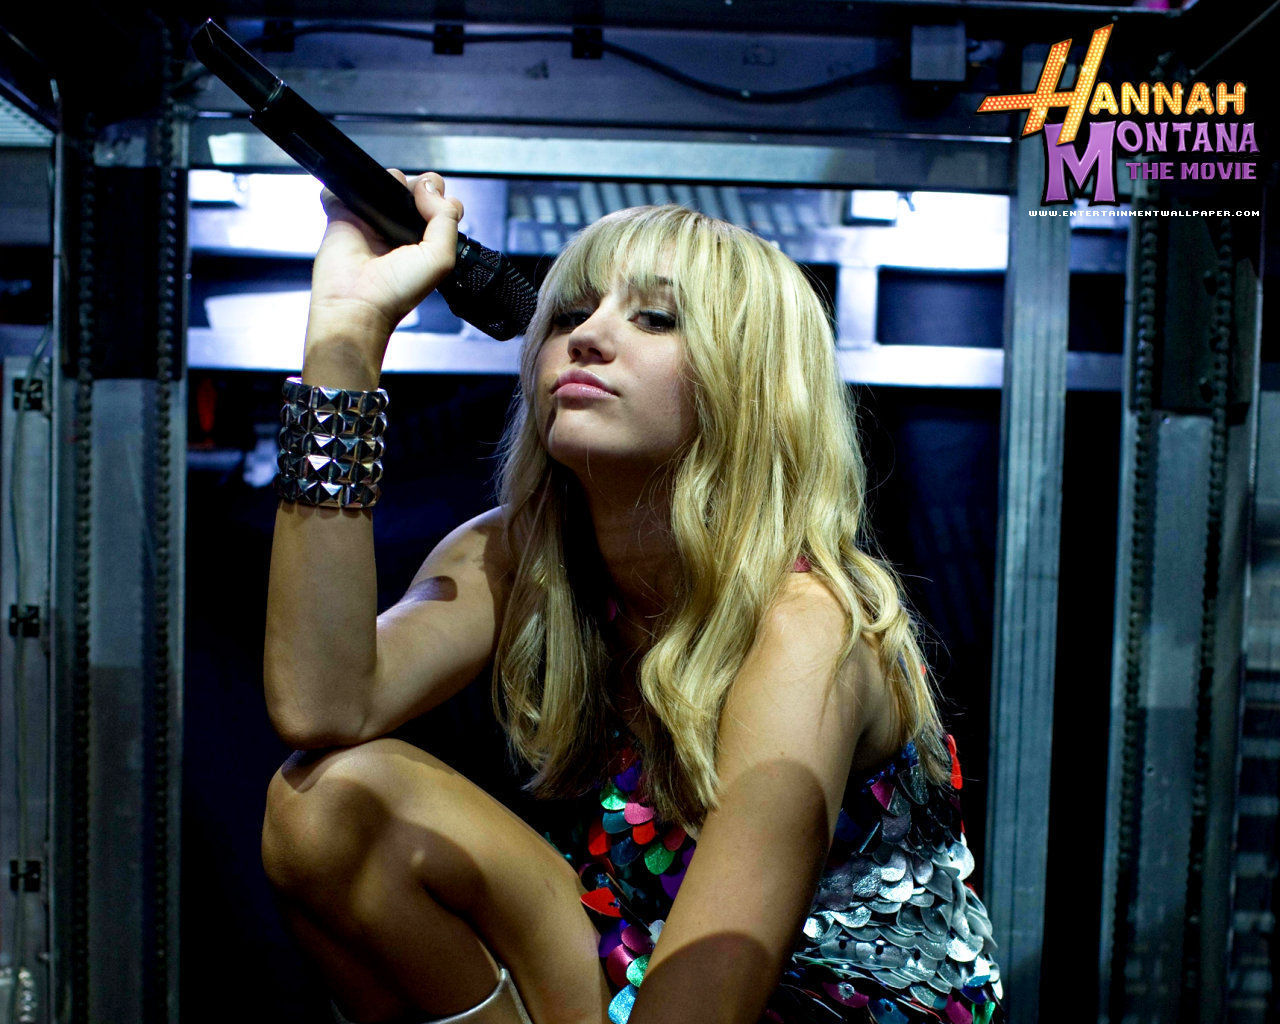 http://images2.fanpop.com/images/photos/5400000/Hannah-Montana-The-Movie-miley-cyrus-5466956-1280-1024.jpg